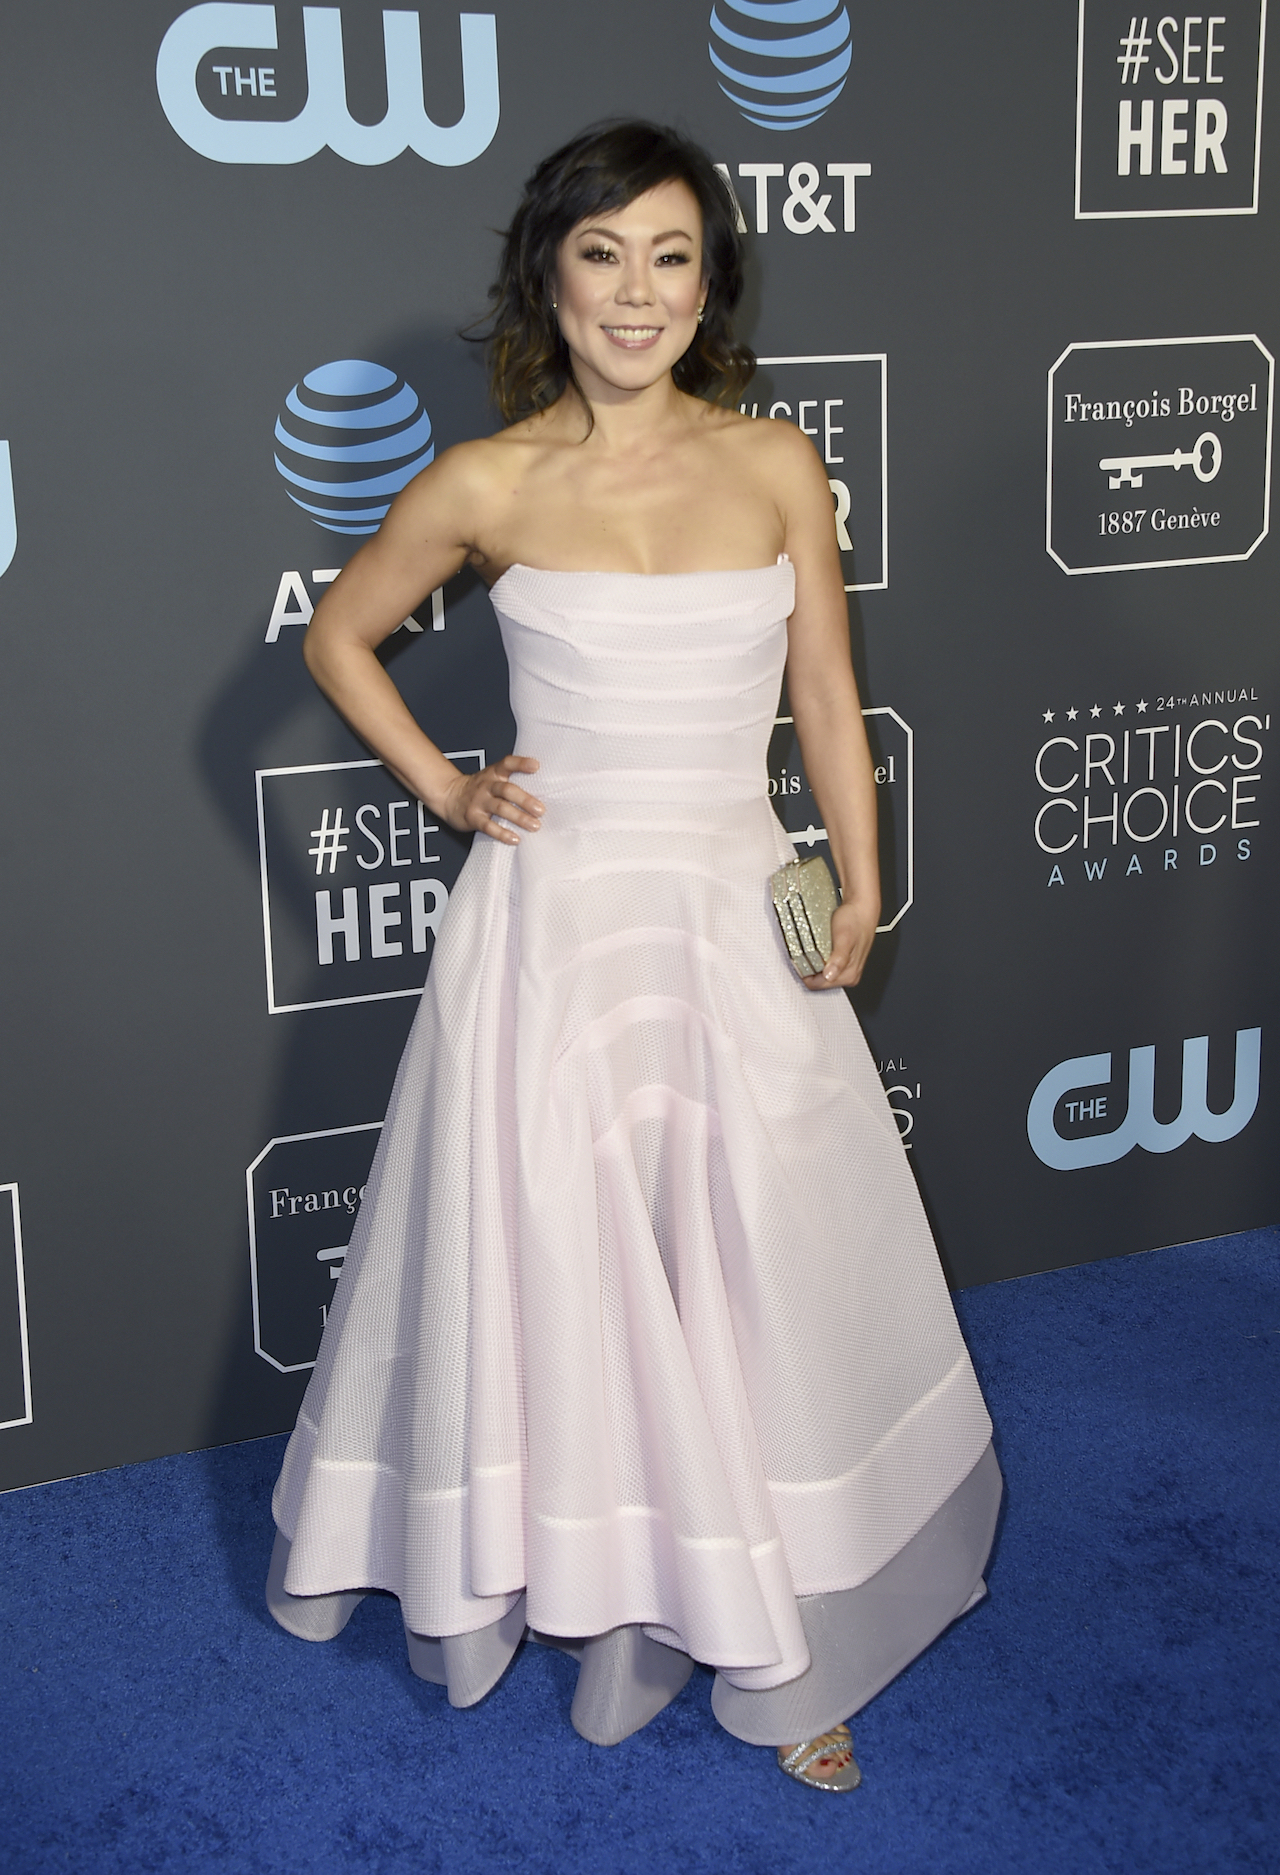 "<div class=""meta image-caption""><div class=""origin-logo origin-image ap""><span>AP</span></div><span class=""caption-text"">Ali Ahn arrives at the 24th annual Critics' Choice Awards on Sunday, Jan. 13, 2019, at the Barker Hangar in Santa Monica, Calif. (Jordan Strauss/Invision/AP)</span></div>"